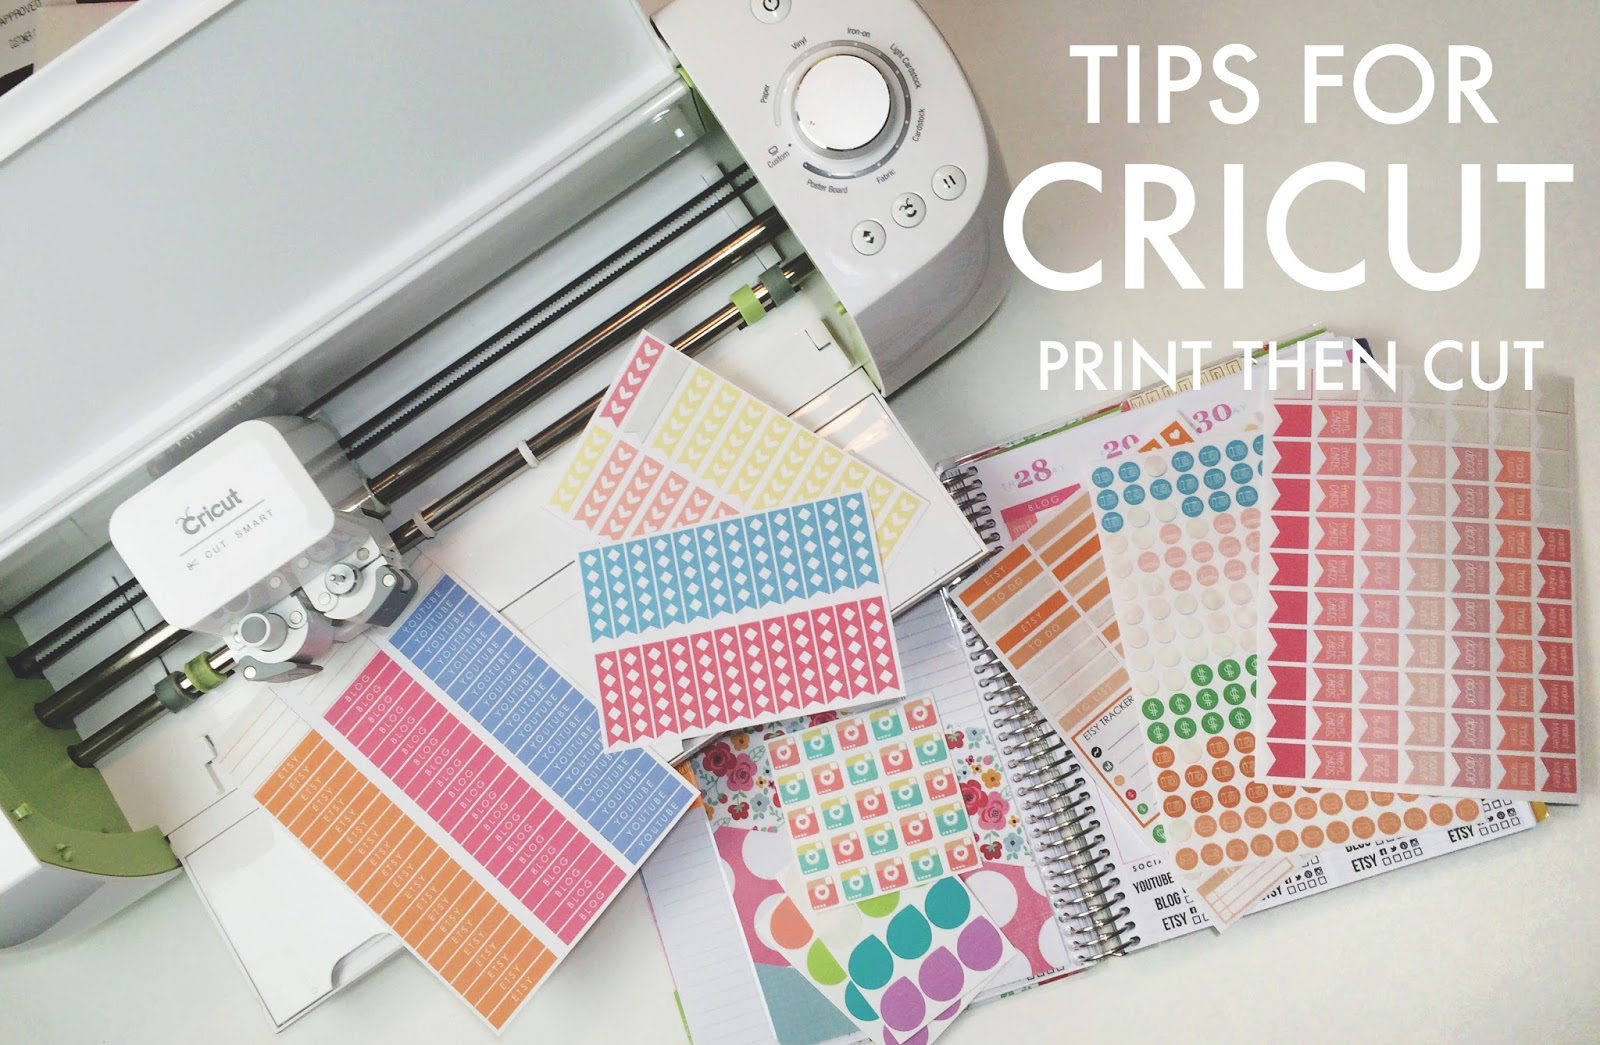 Tips for cricut explore print then cut making stickers